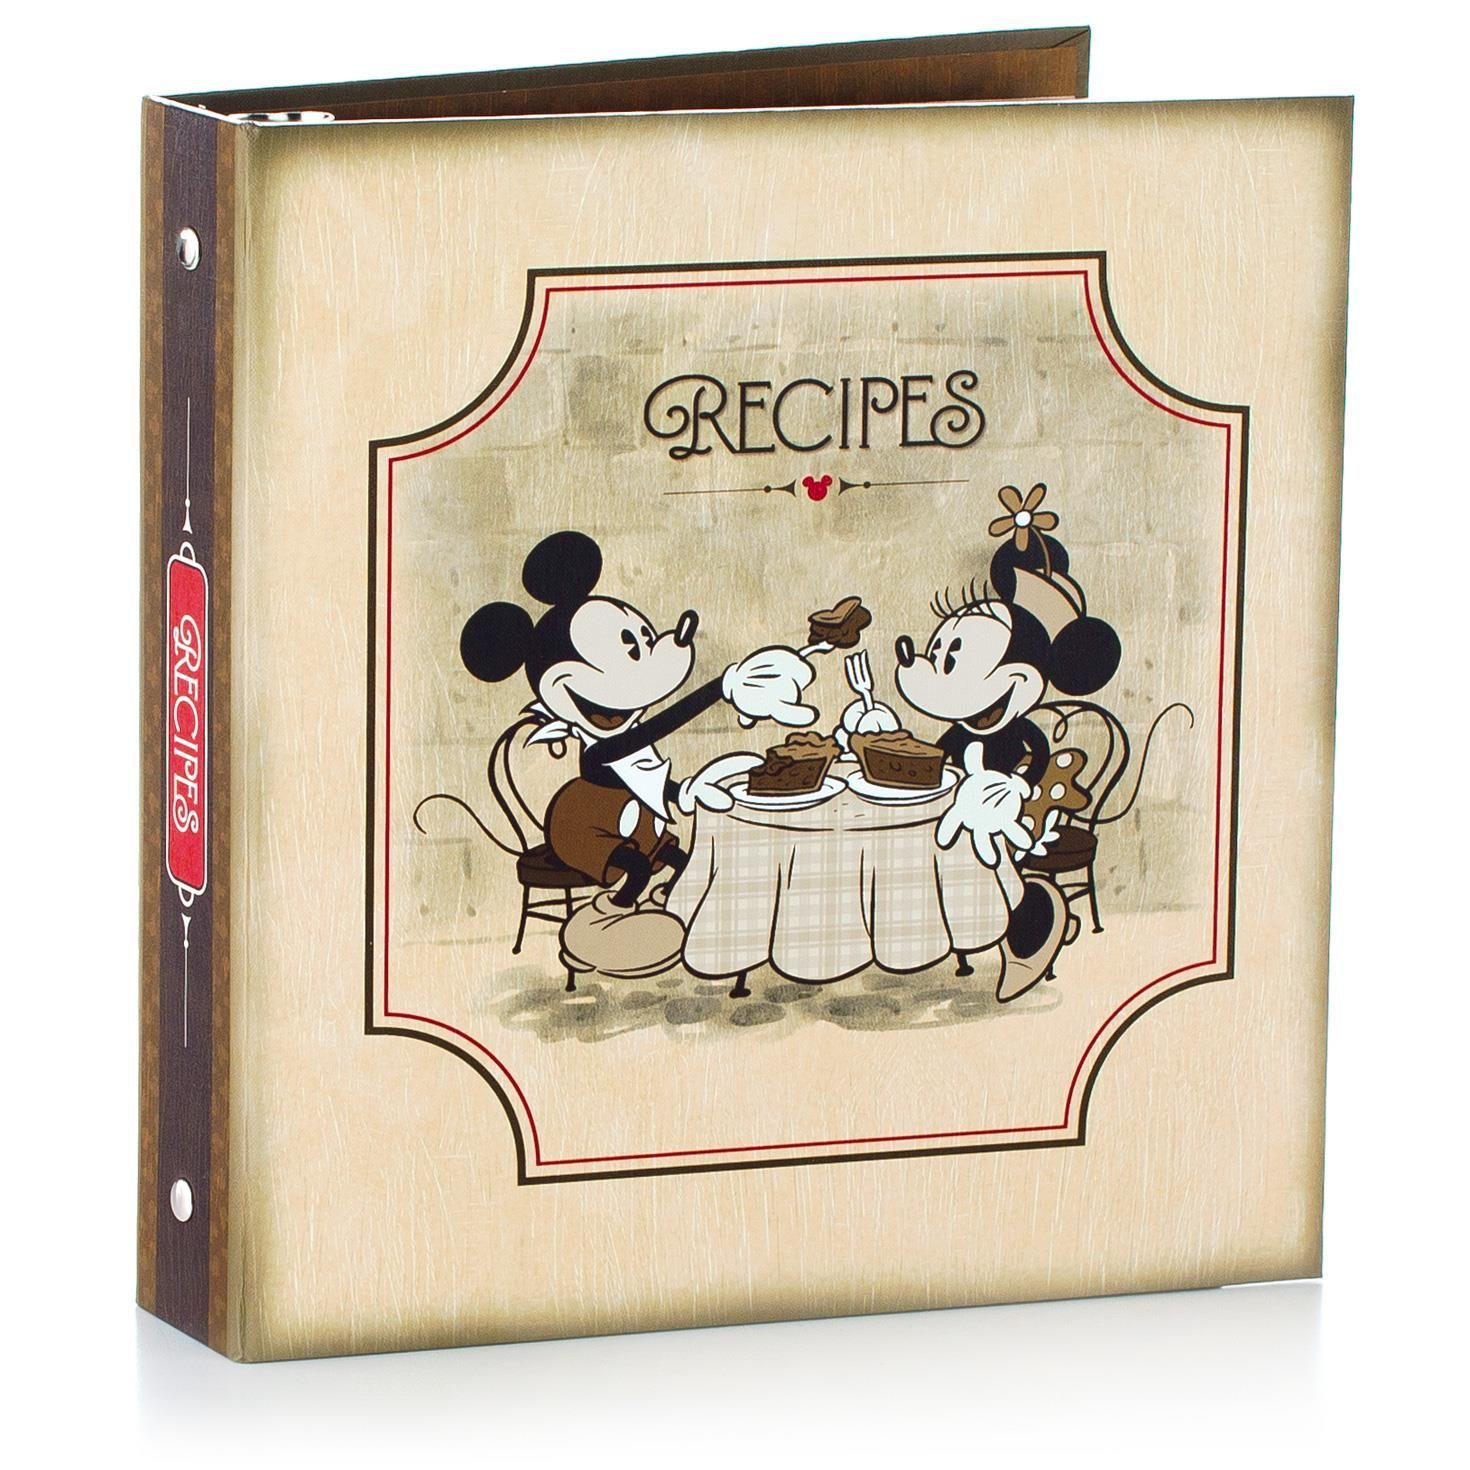 Disney Mickey Mouse Recipe Book Organizer Gift Set | "|1470|1470|?|b710817ad0894a5b6d696be33ee8a783|False|UNLIKELY|0.32406240701675415